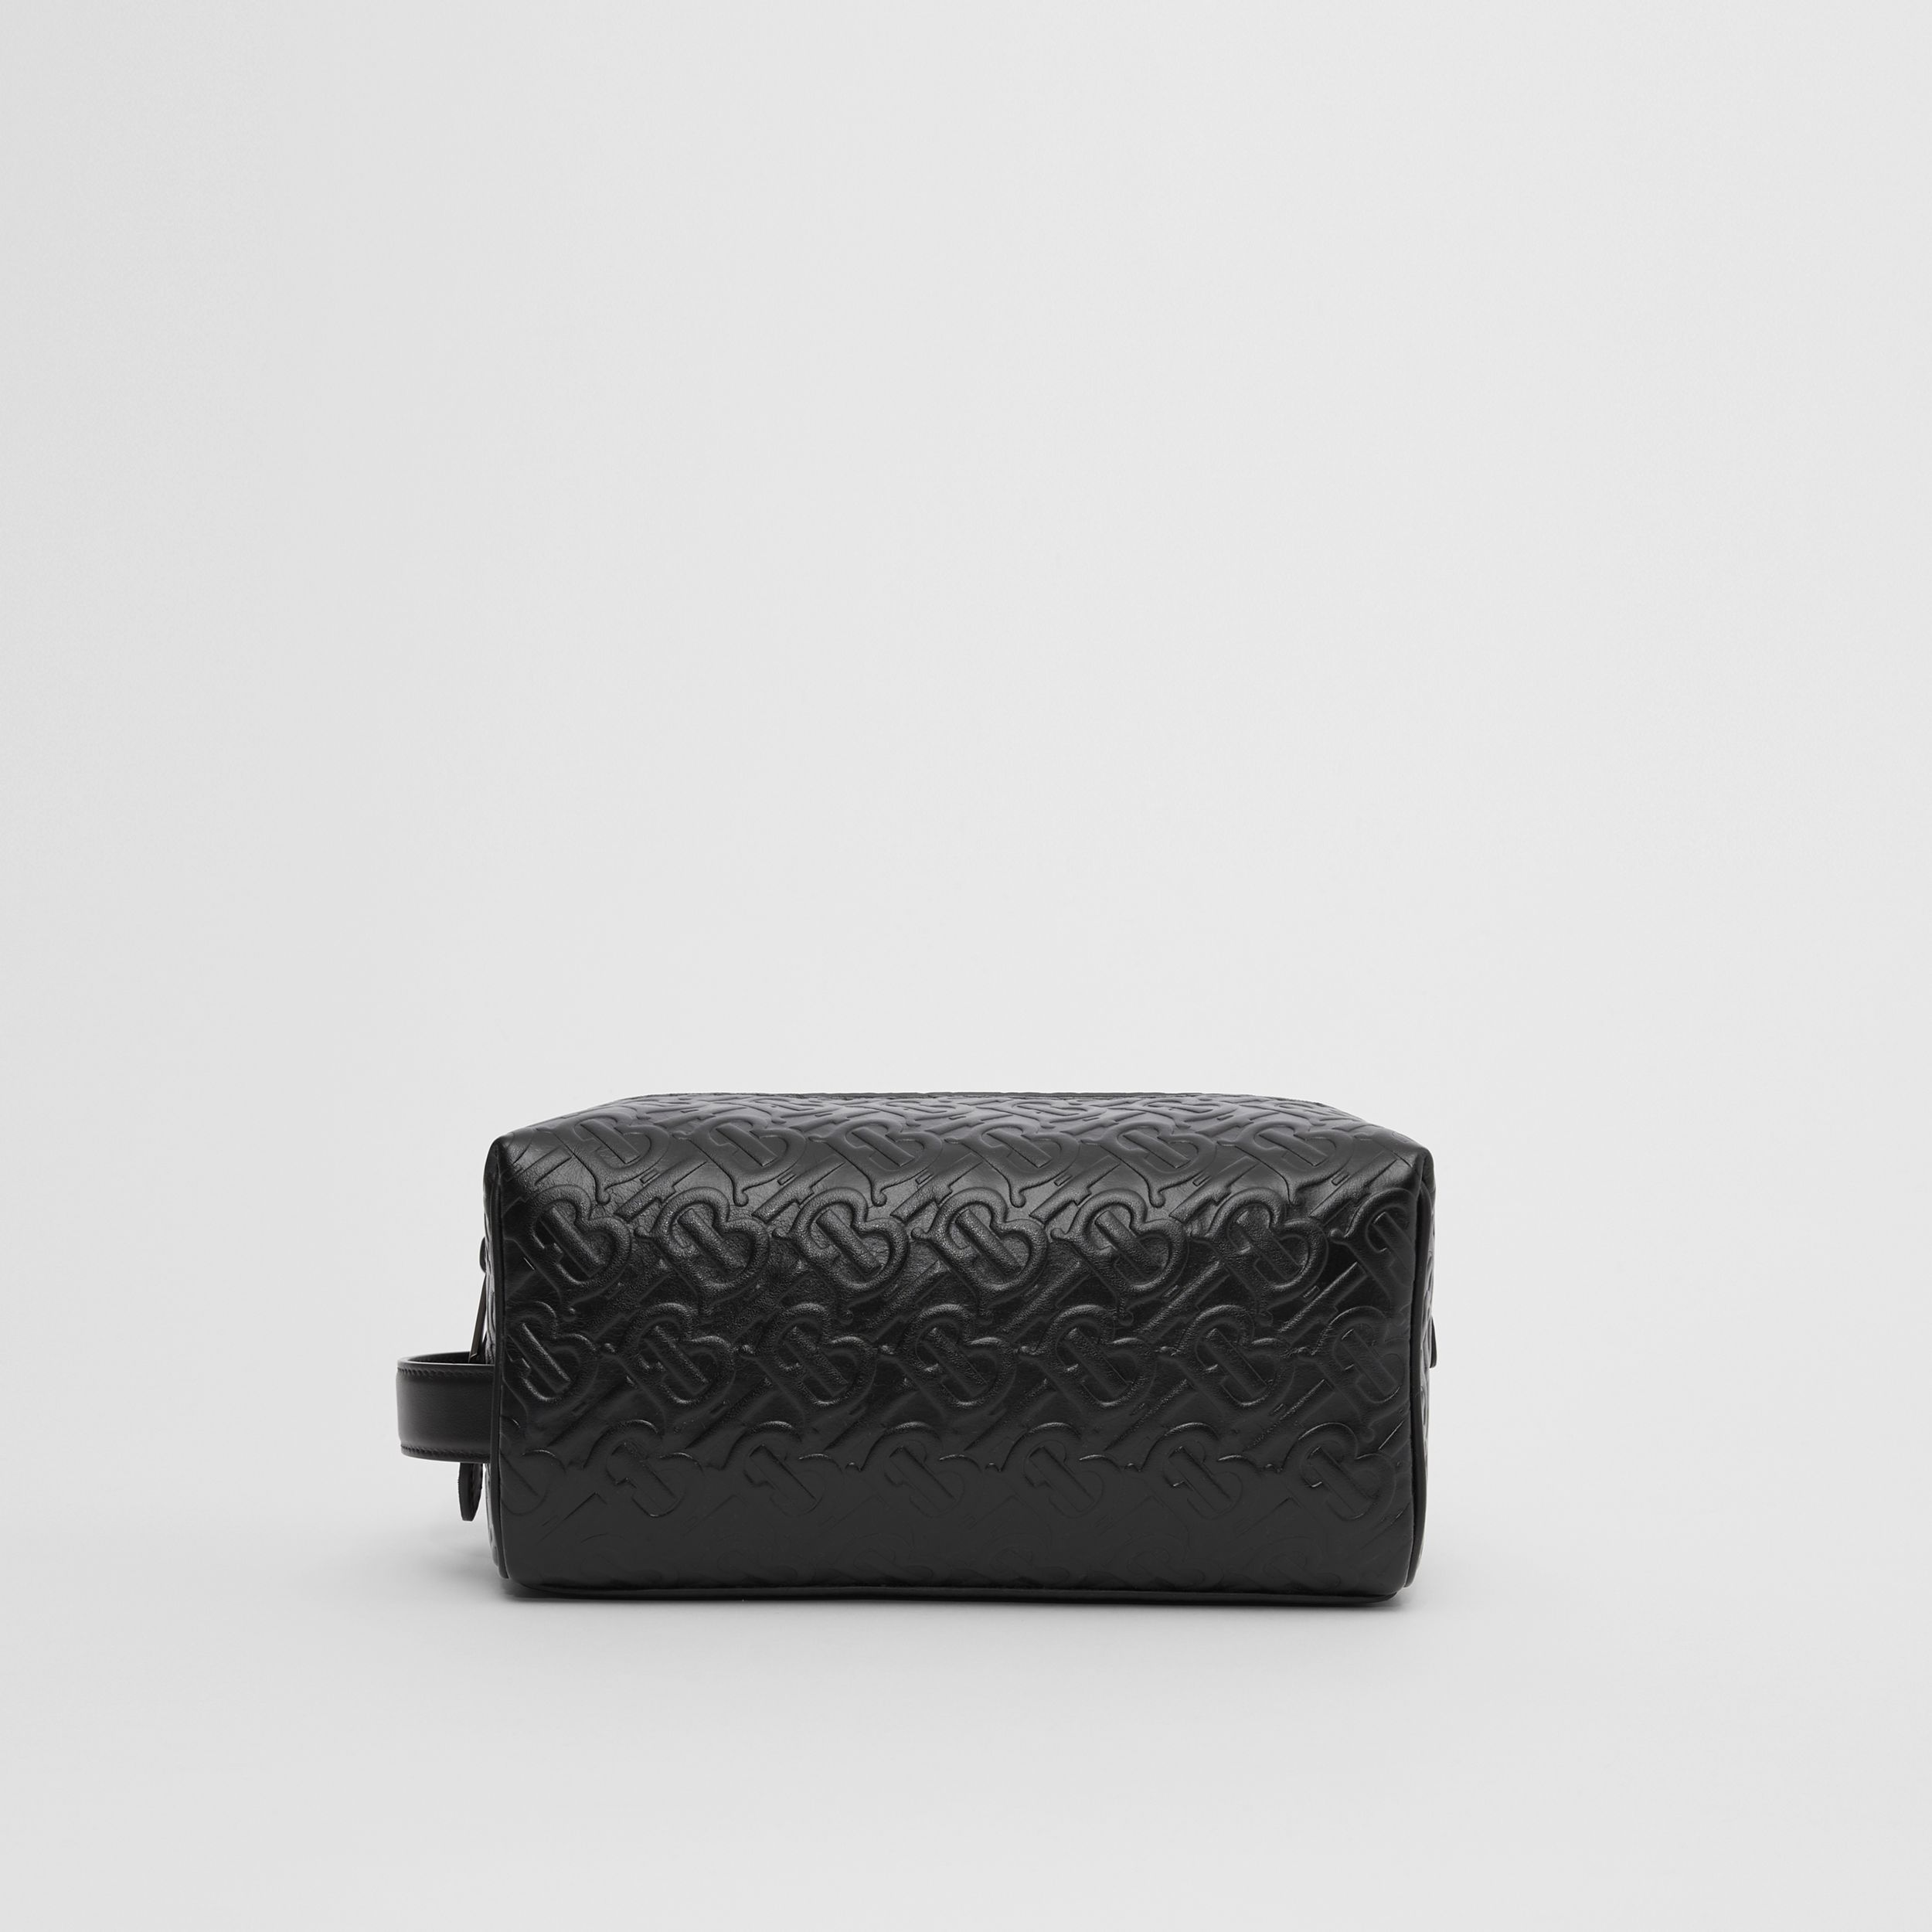 Monogram Leather Travel Pouch in Black - Men | Burberry - 1